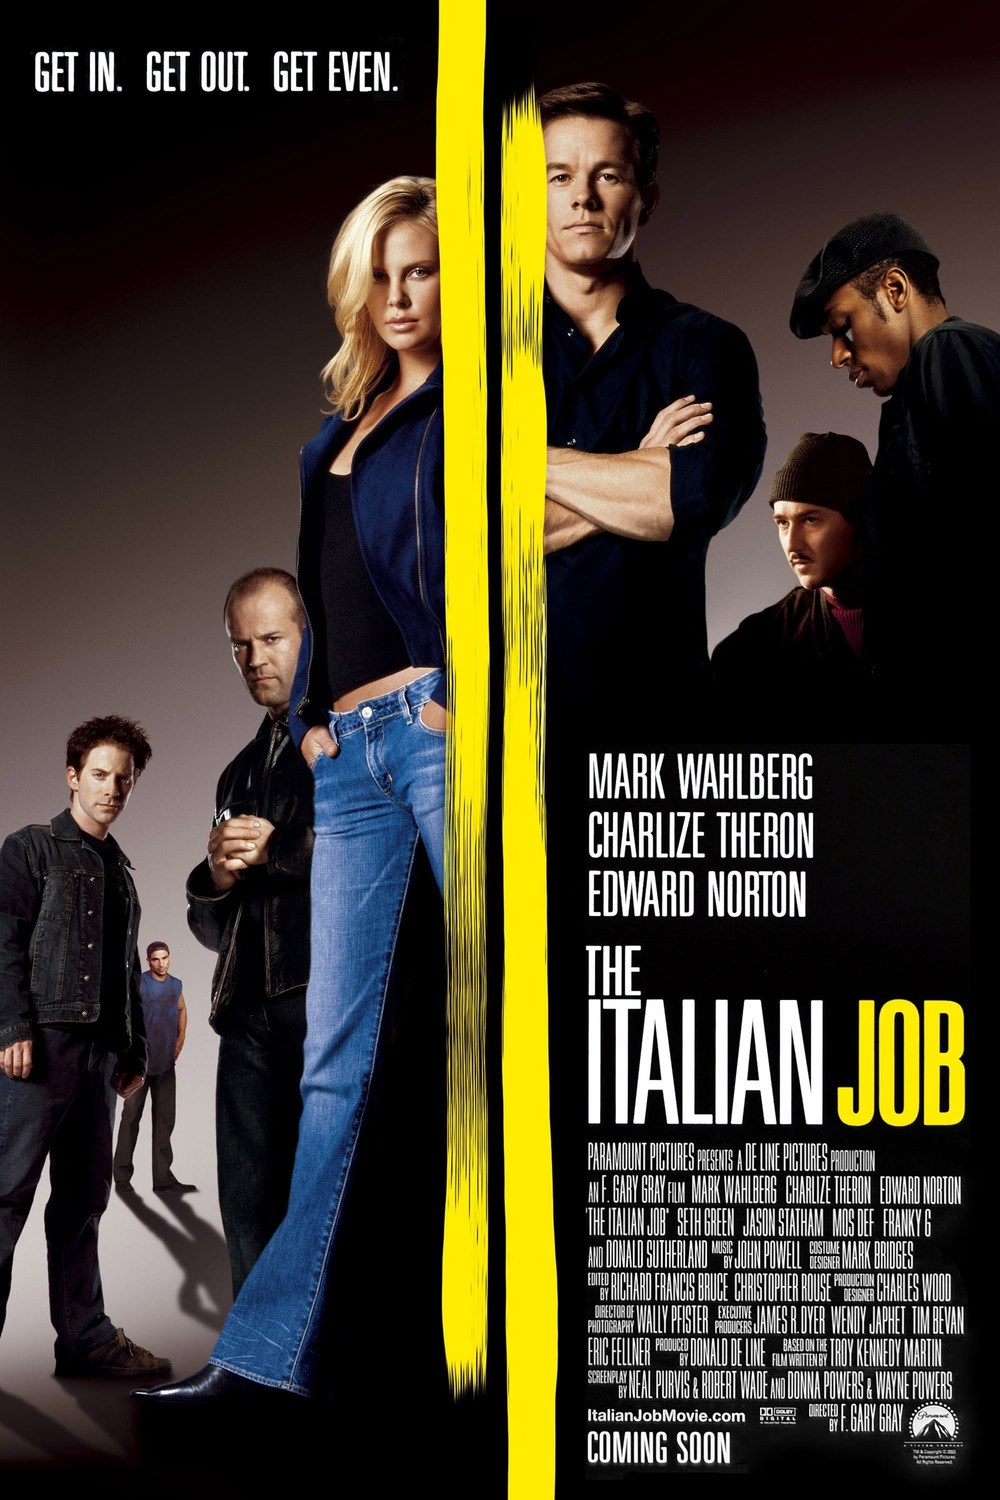 The Italian Job Movie Poster.jpg